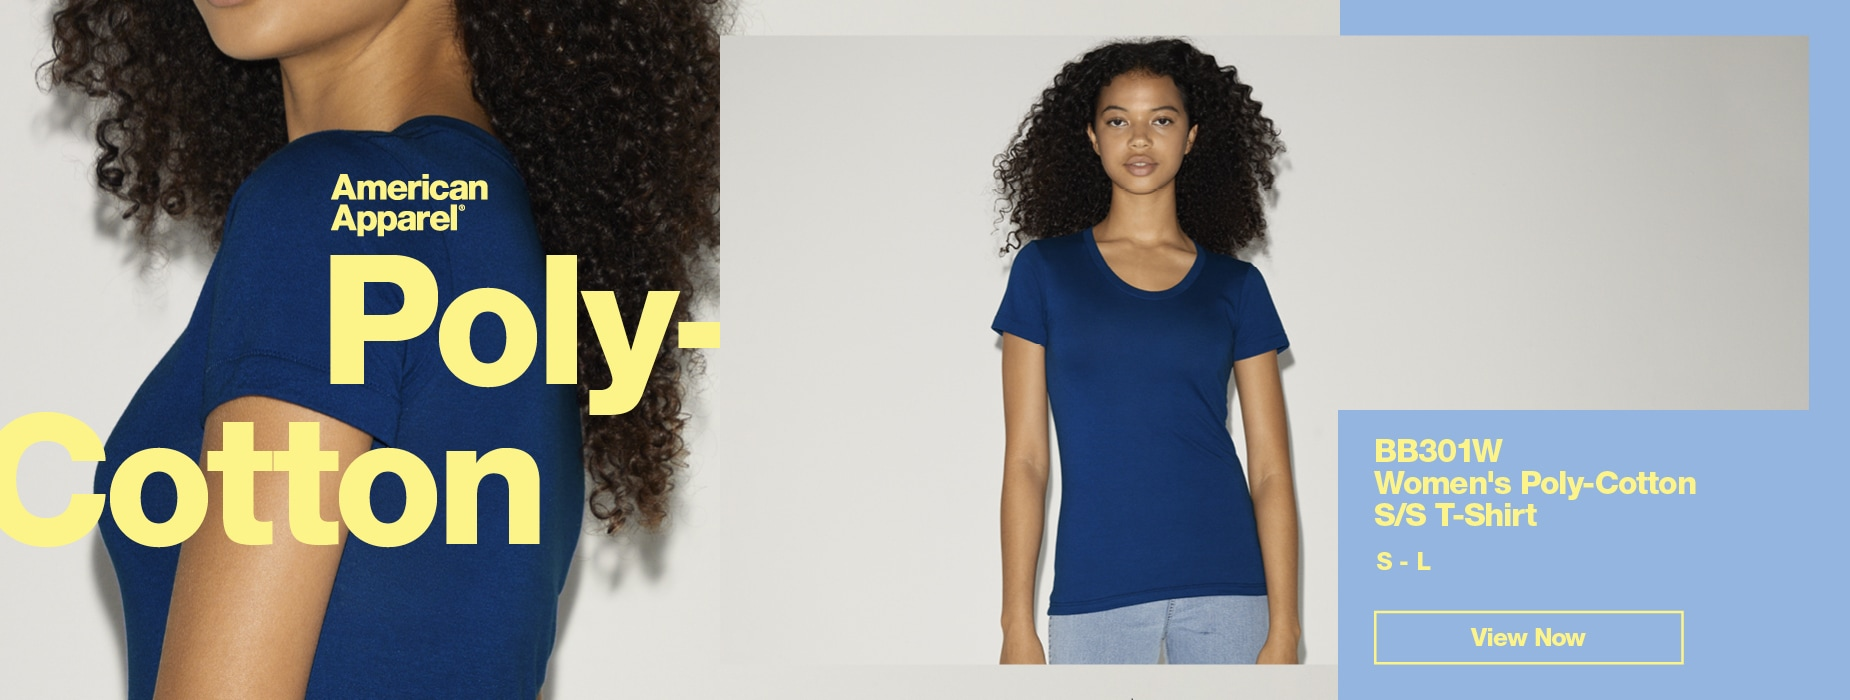 Shop our American Apparel BB301W Poly-Cotton Womens T-Shirt, レディースポリコットンTシャツ | Gildan® Brands Japan